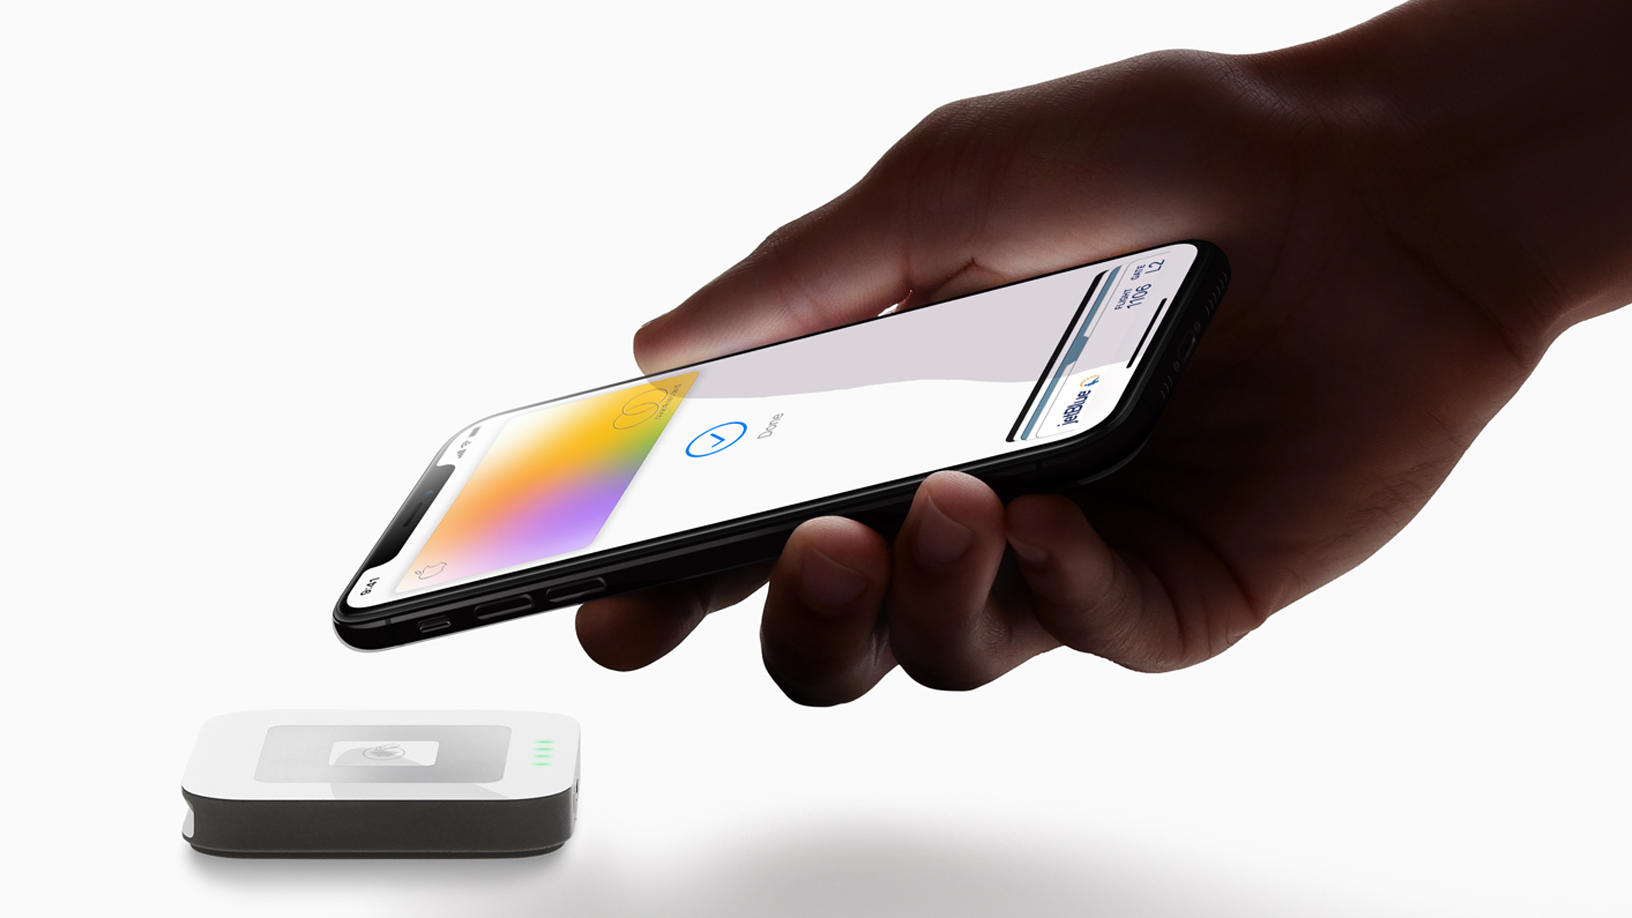 Apple Card Venmo Card And Paypal Card Which Should You Get Cnet